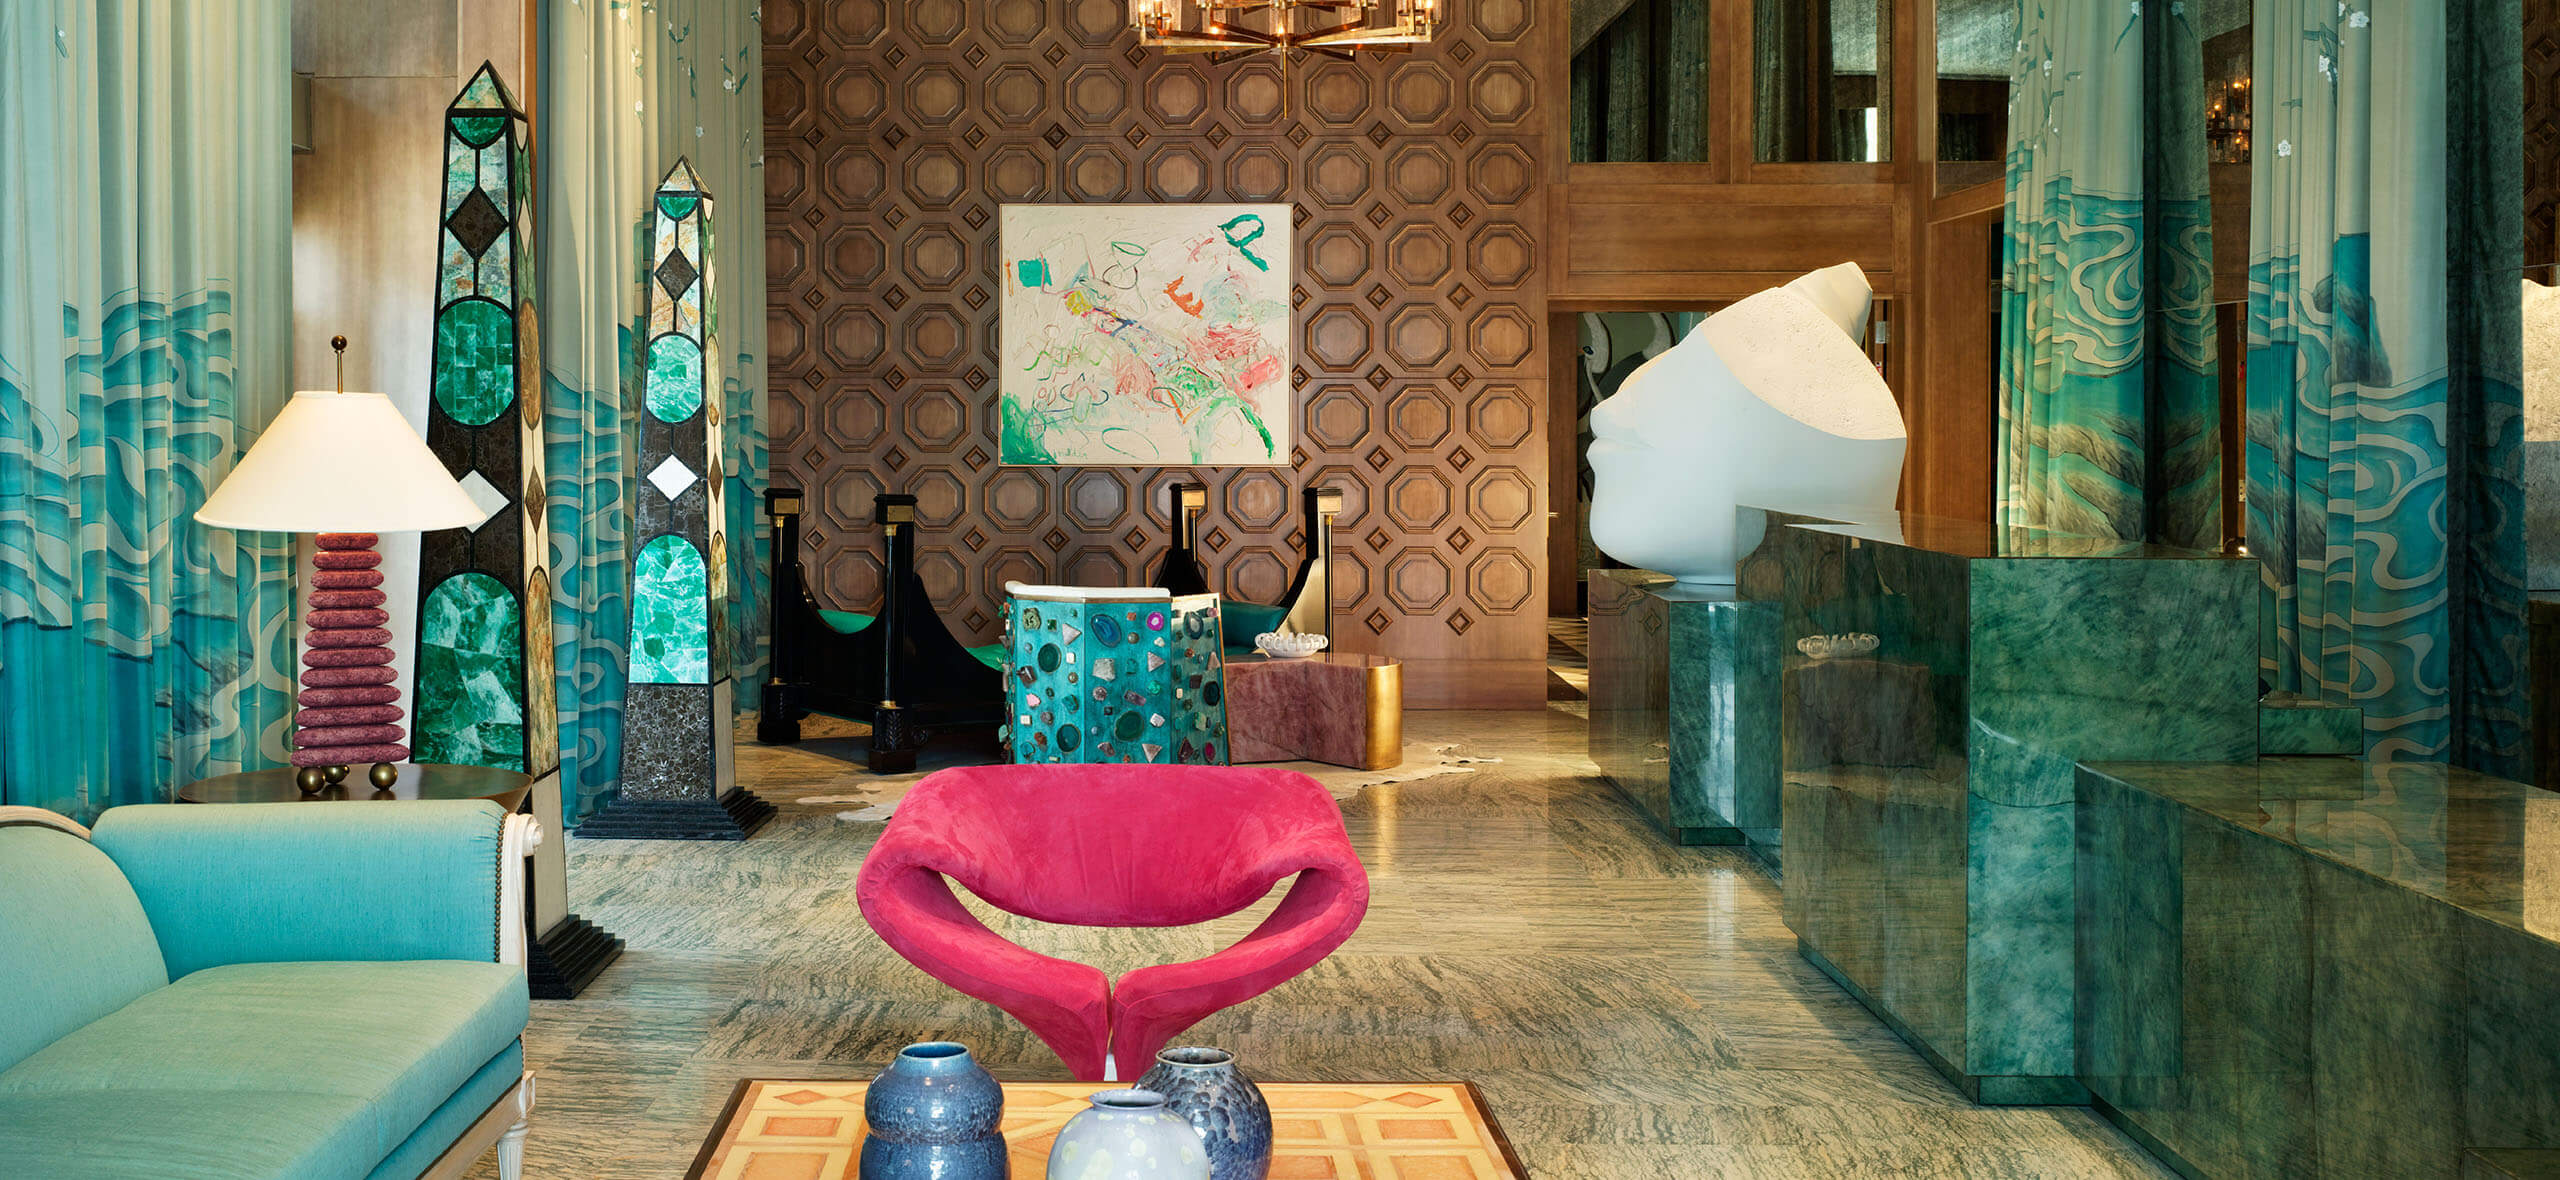 Kelly Wearstler Online Store Interiors Viceroy Miami